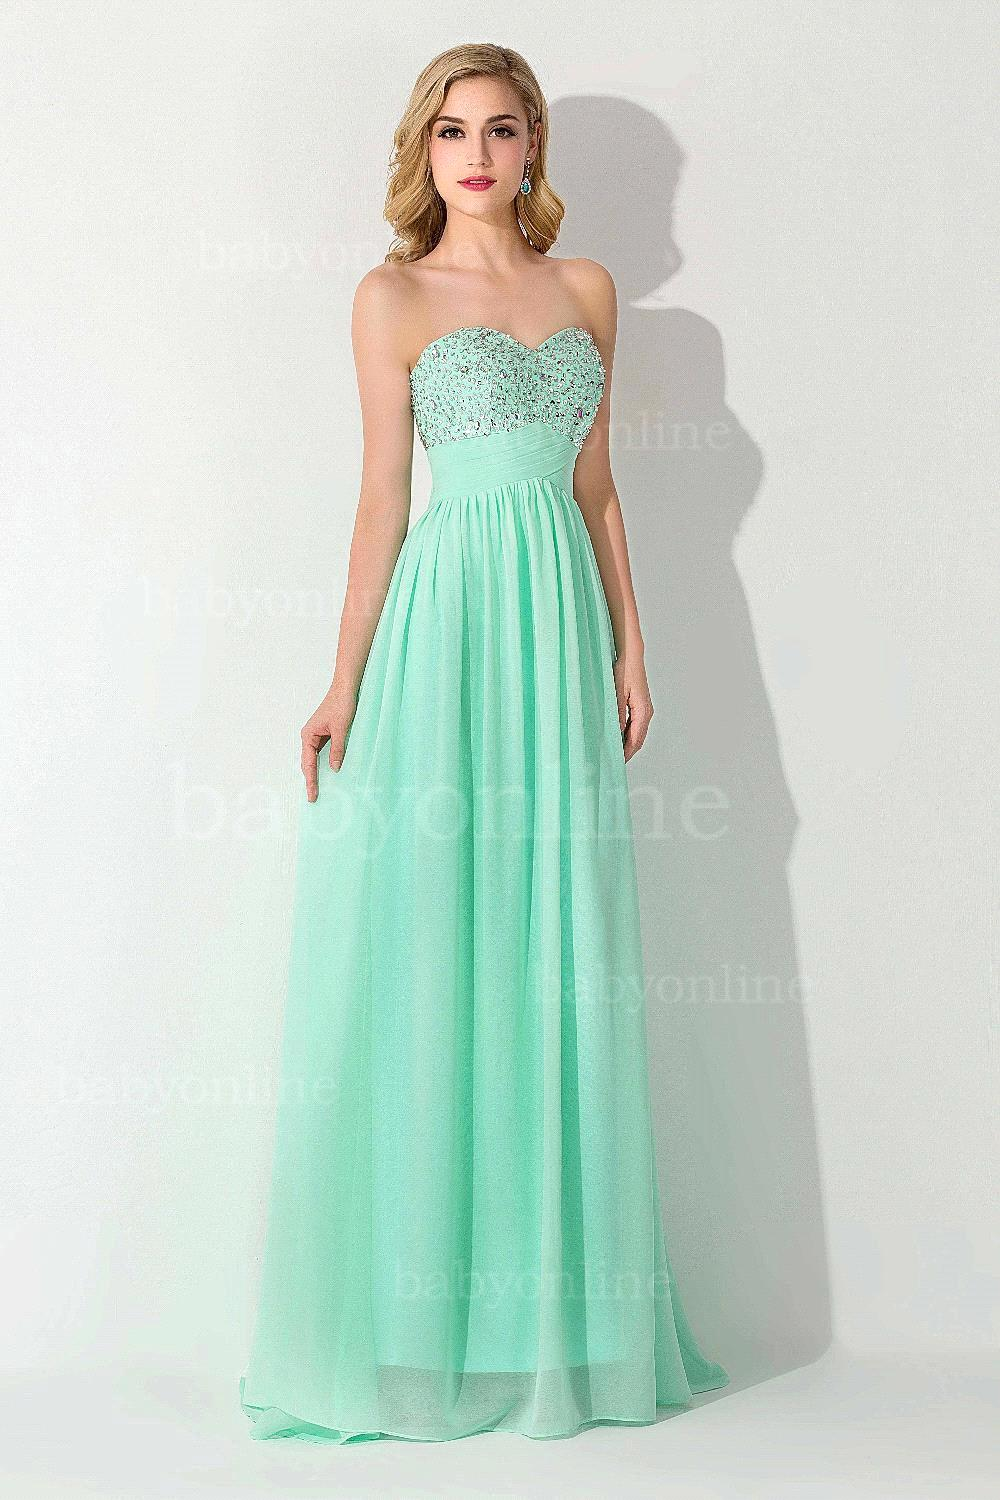 Online Get Cheap Prom Mint Green Dress -Aliexpress.com | Alibaba Group